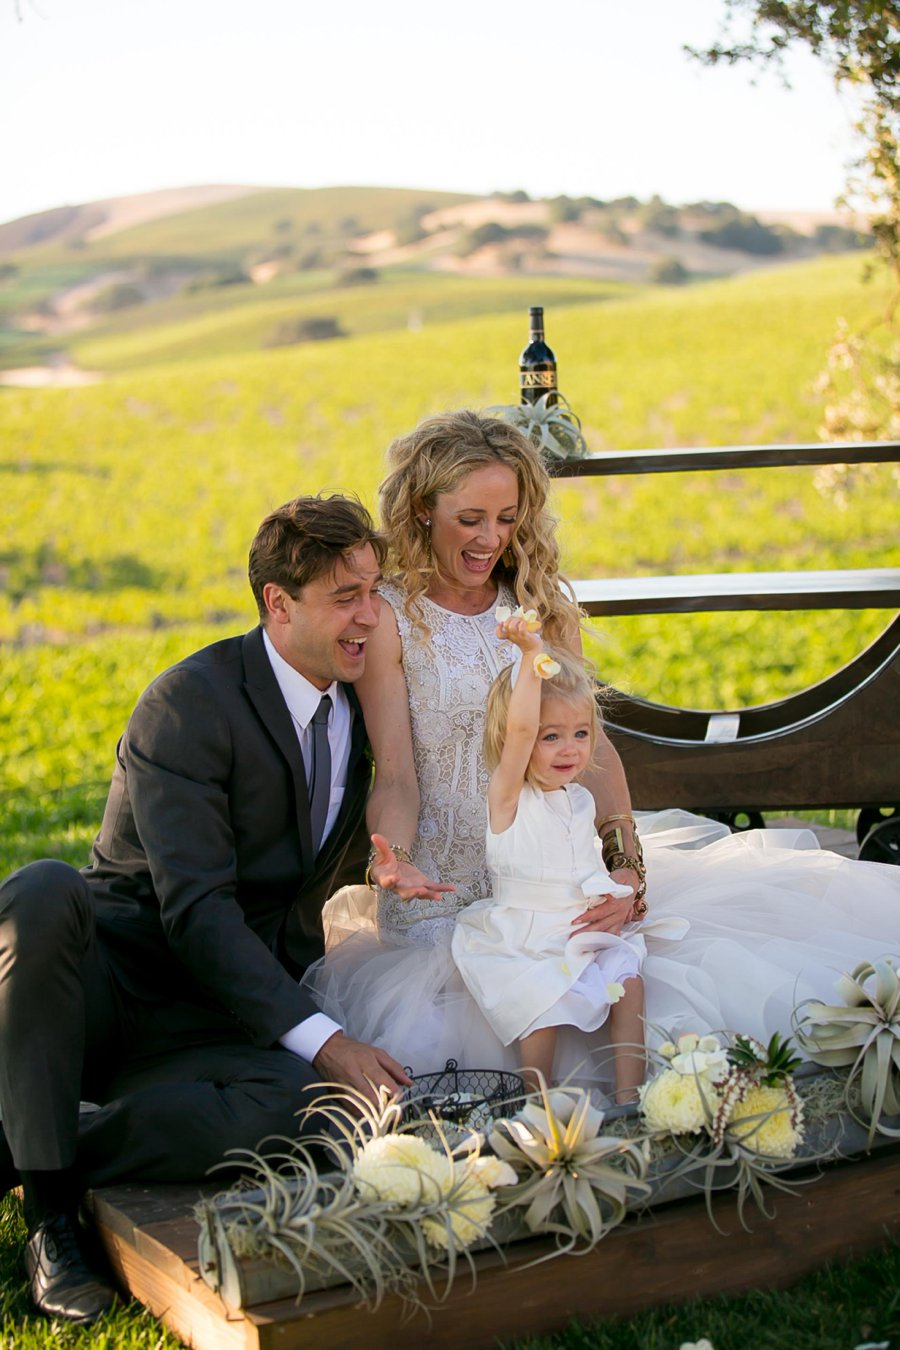 STOLPMANN VILLA AND VINEYARDS | LOS OLIVOS WEDDING PHOTOGRAPHER CHRIS HOLT PHOTOGRAPHY_041.jpg